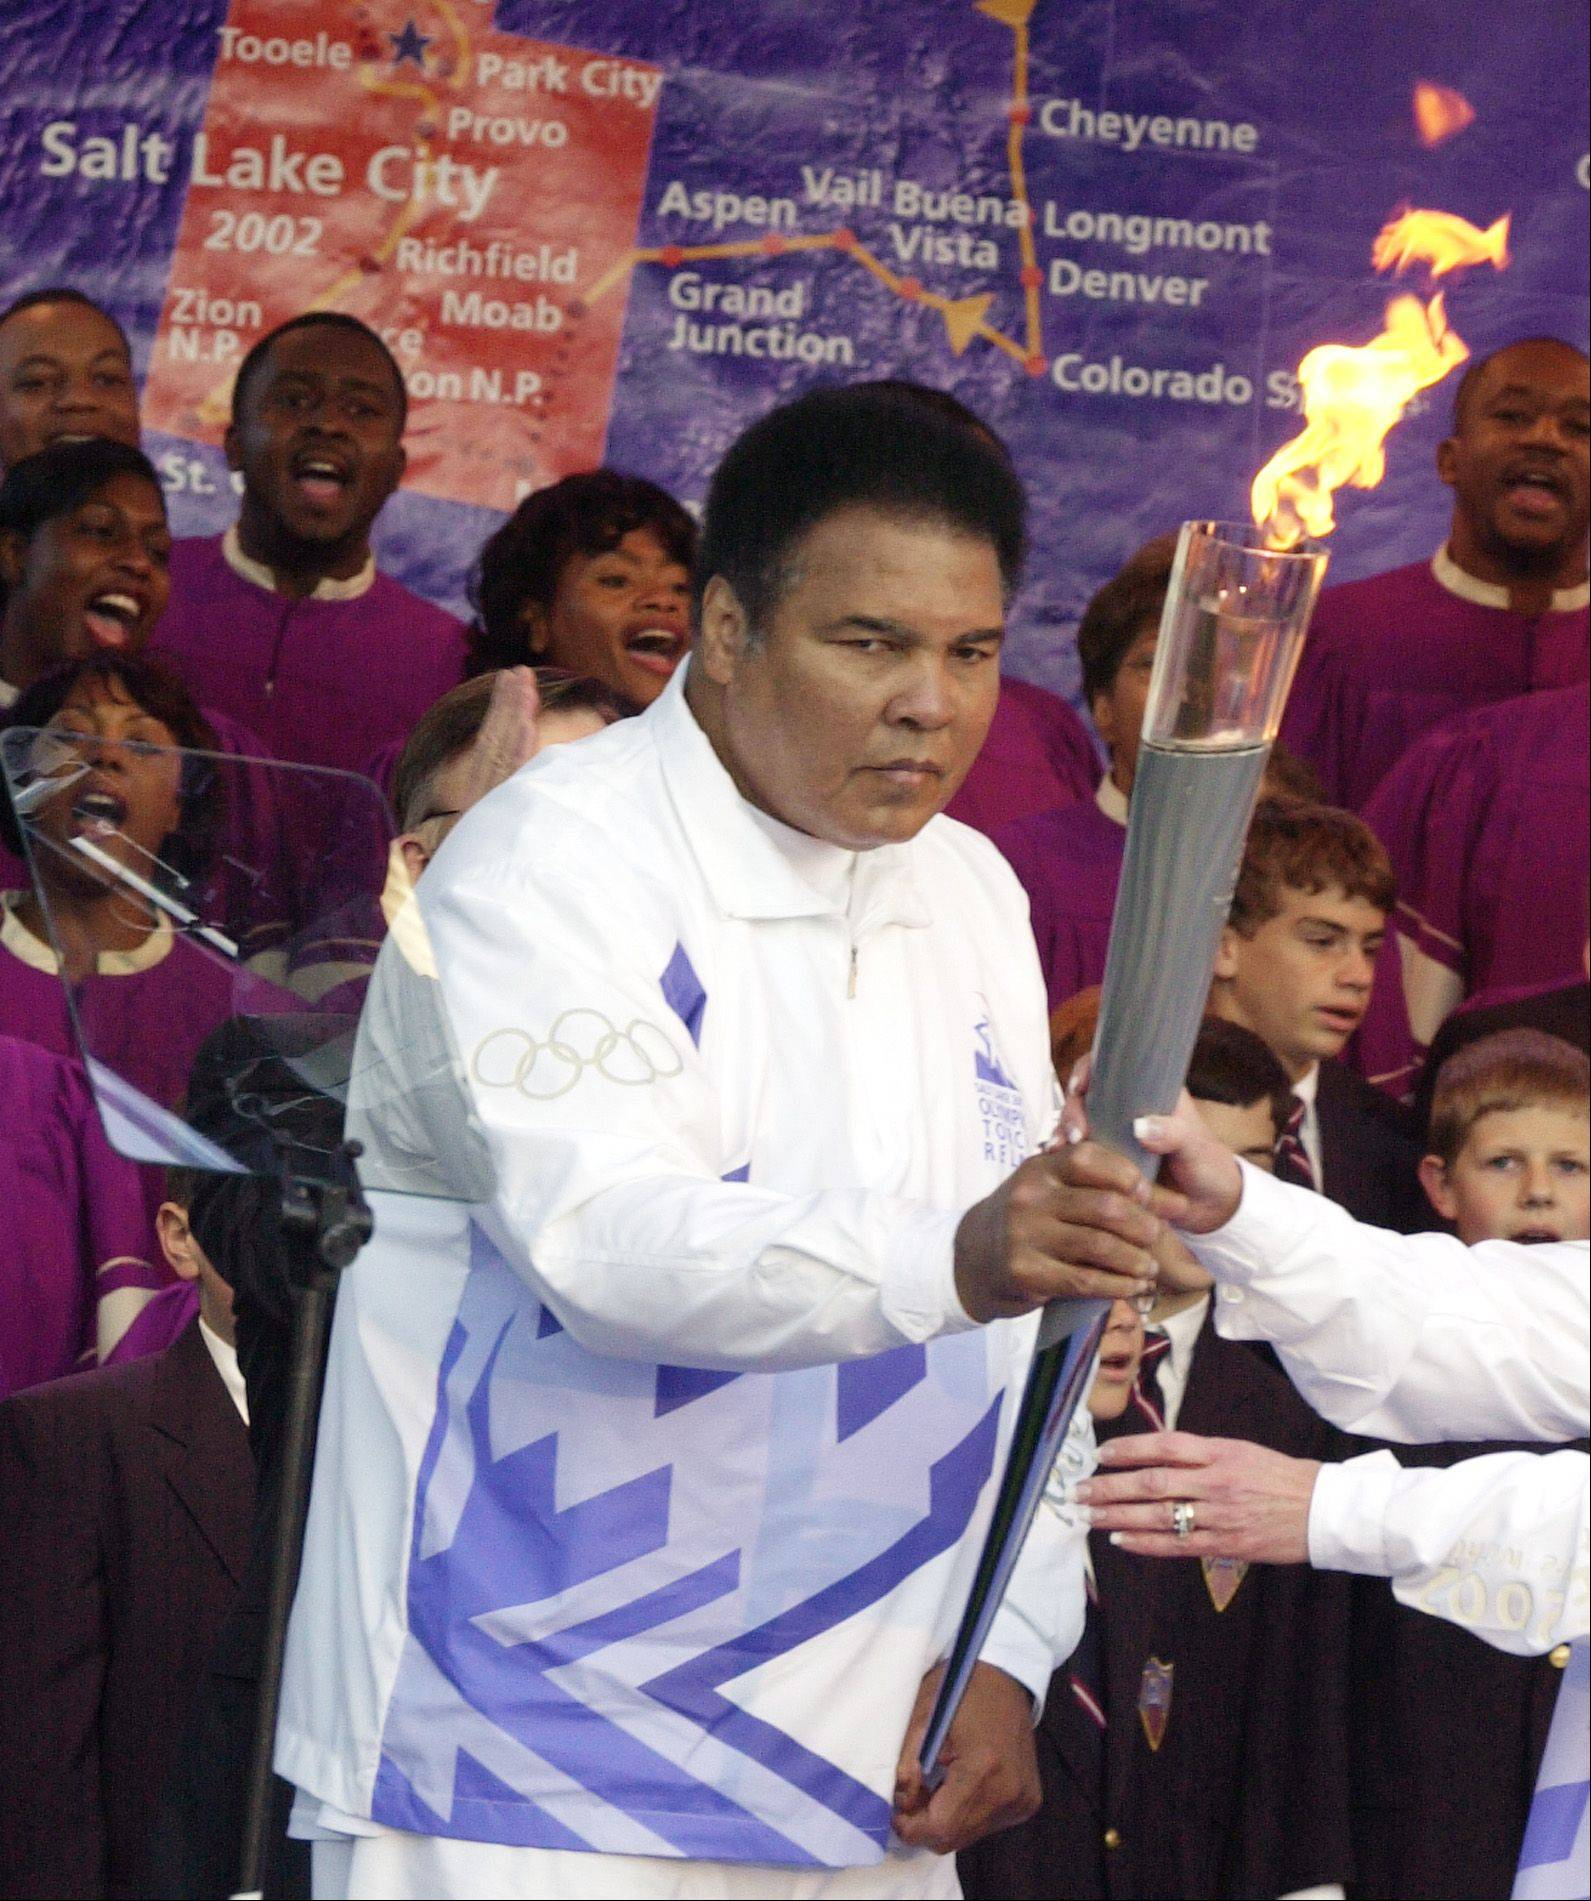 Boxing legend Muhammad Ali hands off the Olympic torch in front of a map showing the torch's travels during a ceremony at Centennial Olympic Park in Atlanta on Dec. 4, 2001.